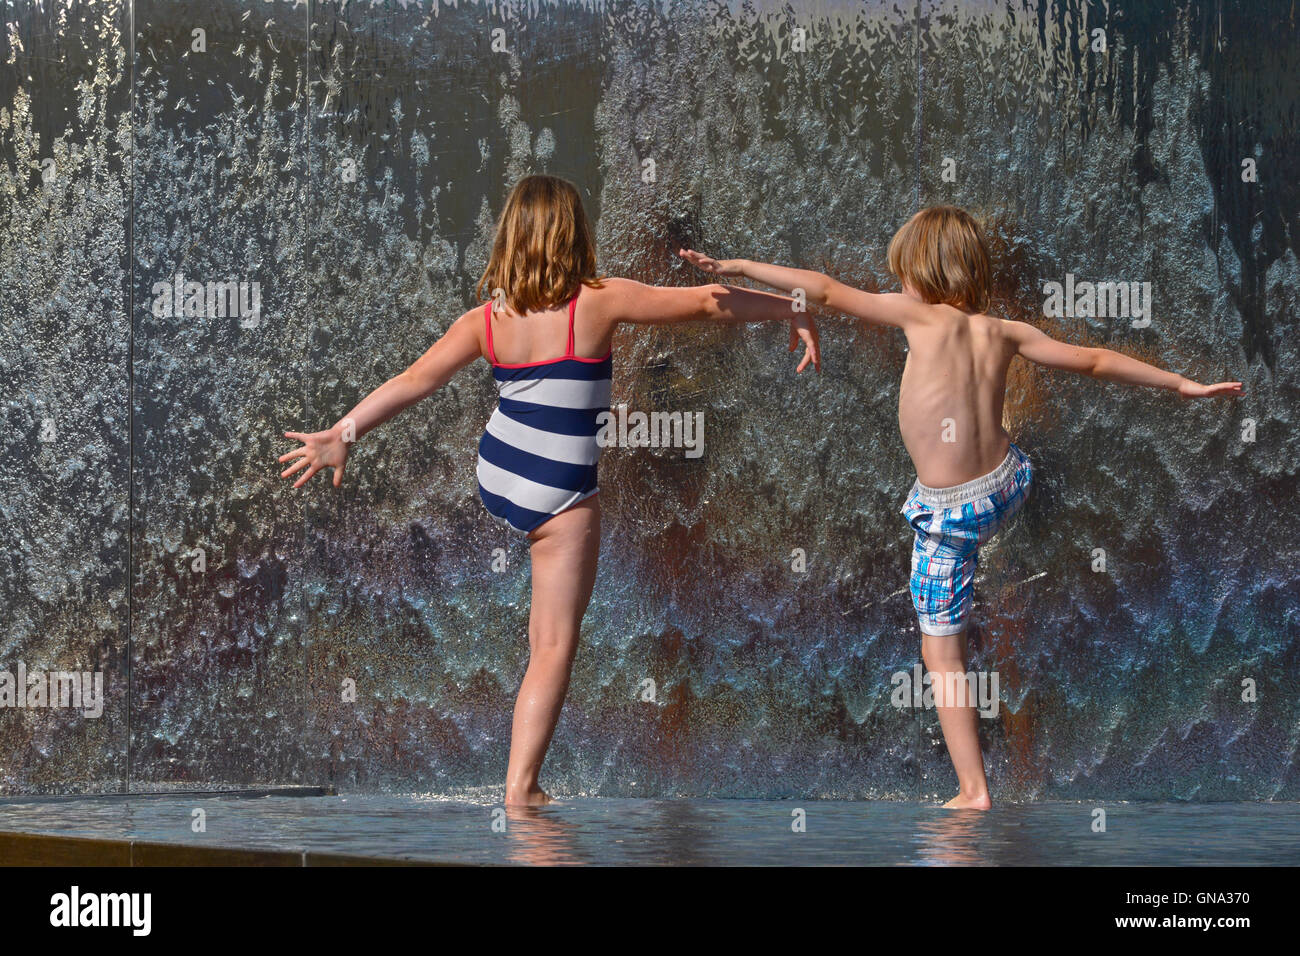 Bristol, UK. 29th Aug, 2016. UK Weather. Children doing Water Ballet in the fountains in Millennium Square in Bristol - Stock Image